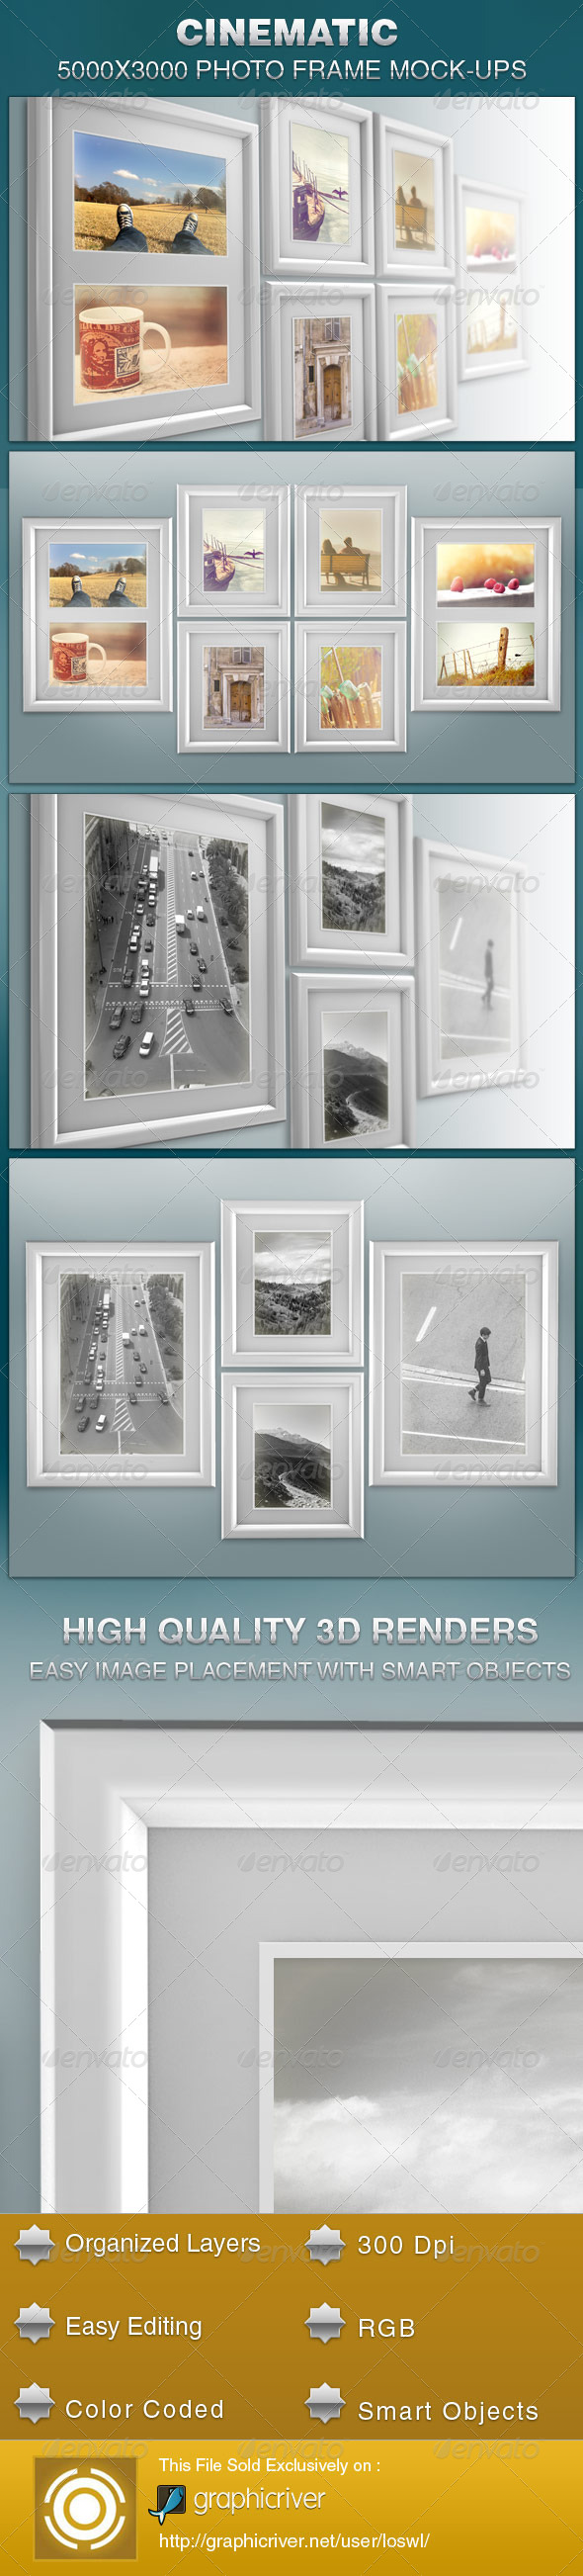 GraphicRiver Cinematic Photo Frame Mock-ups 5907152